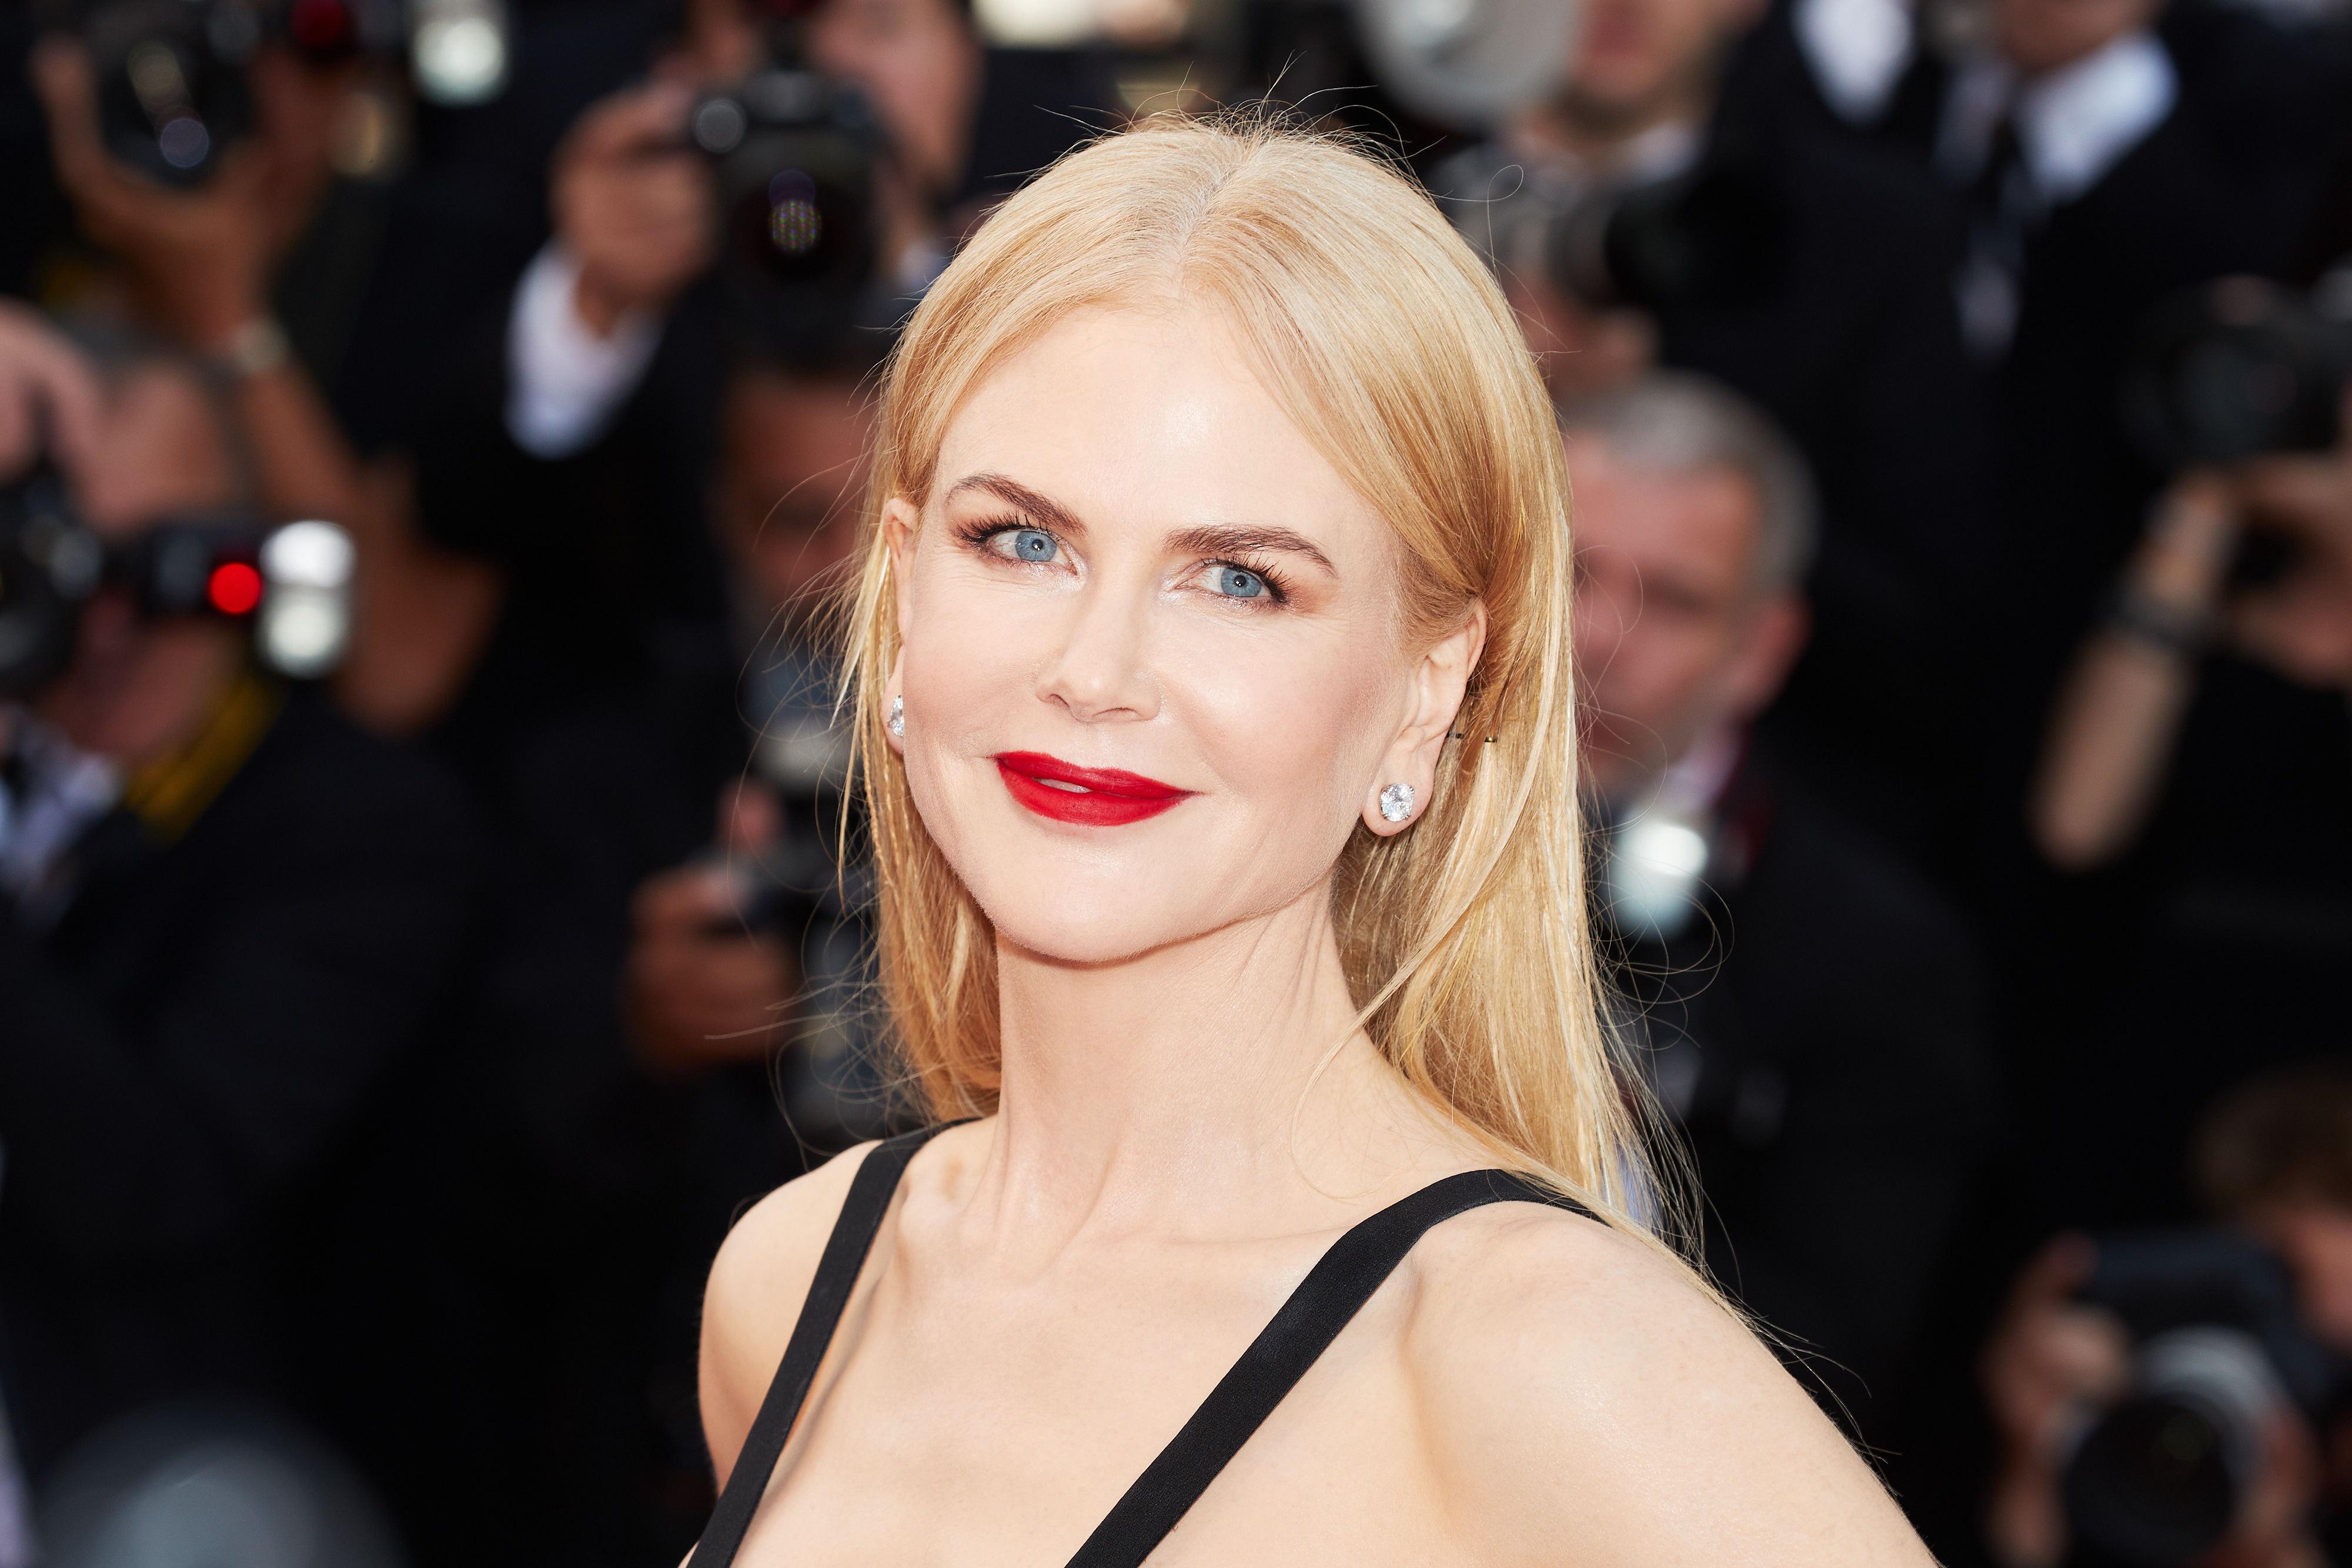 Nicole Kidman's latest Cannes look is a costume fit for a ballerina